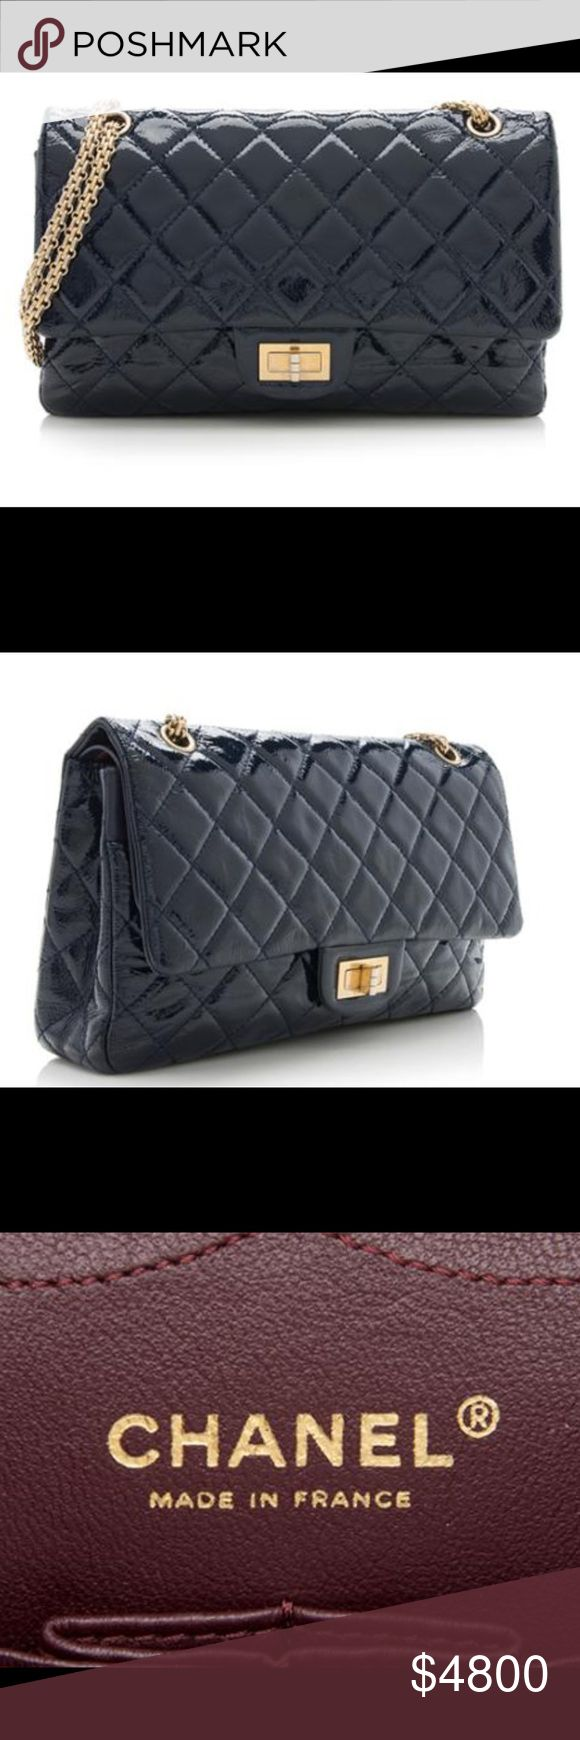 CHANEL NAVY PATENT REISSUE 226 DOUBLE FLAP BAG Purse shows light scuffs and creasing throughout flap. Light scratches and tarnishing on hardware. Light marks on interior. Hologram  started to yellow.  Bag is 2006-2008 It is beautiful deep blue Navy patent leather with a burgundy textile interior. It has 3 open interior pockets and 1 interior snap pocket.  This is guaranteed an authentic bag. I have enclosed pictures but if you have any questions please ask as this is a final sale. No returns…